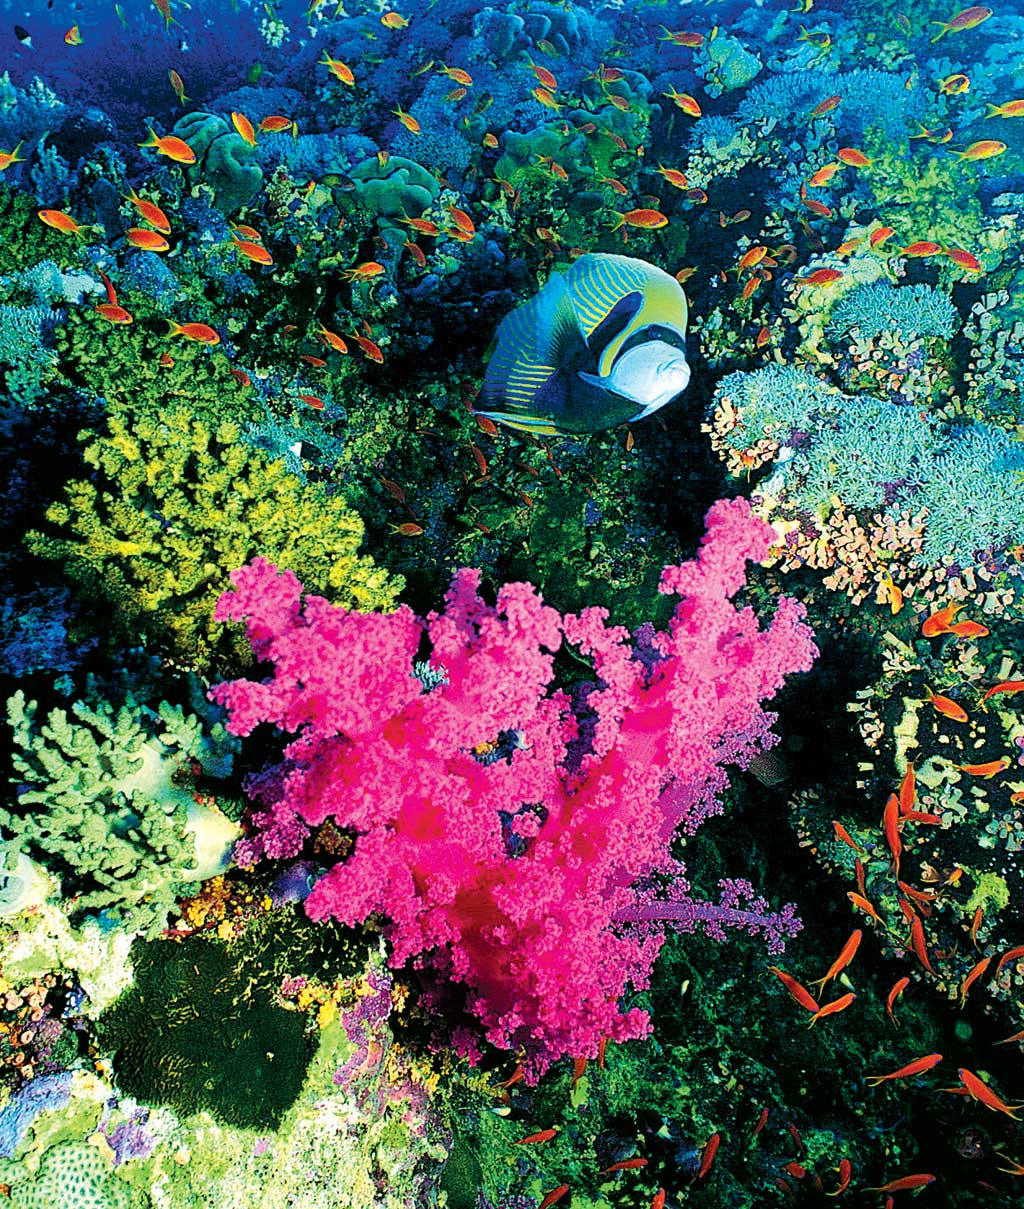 Extraordinarily colorful underwater world in the Andaman Sea